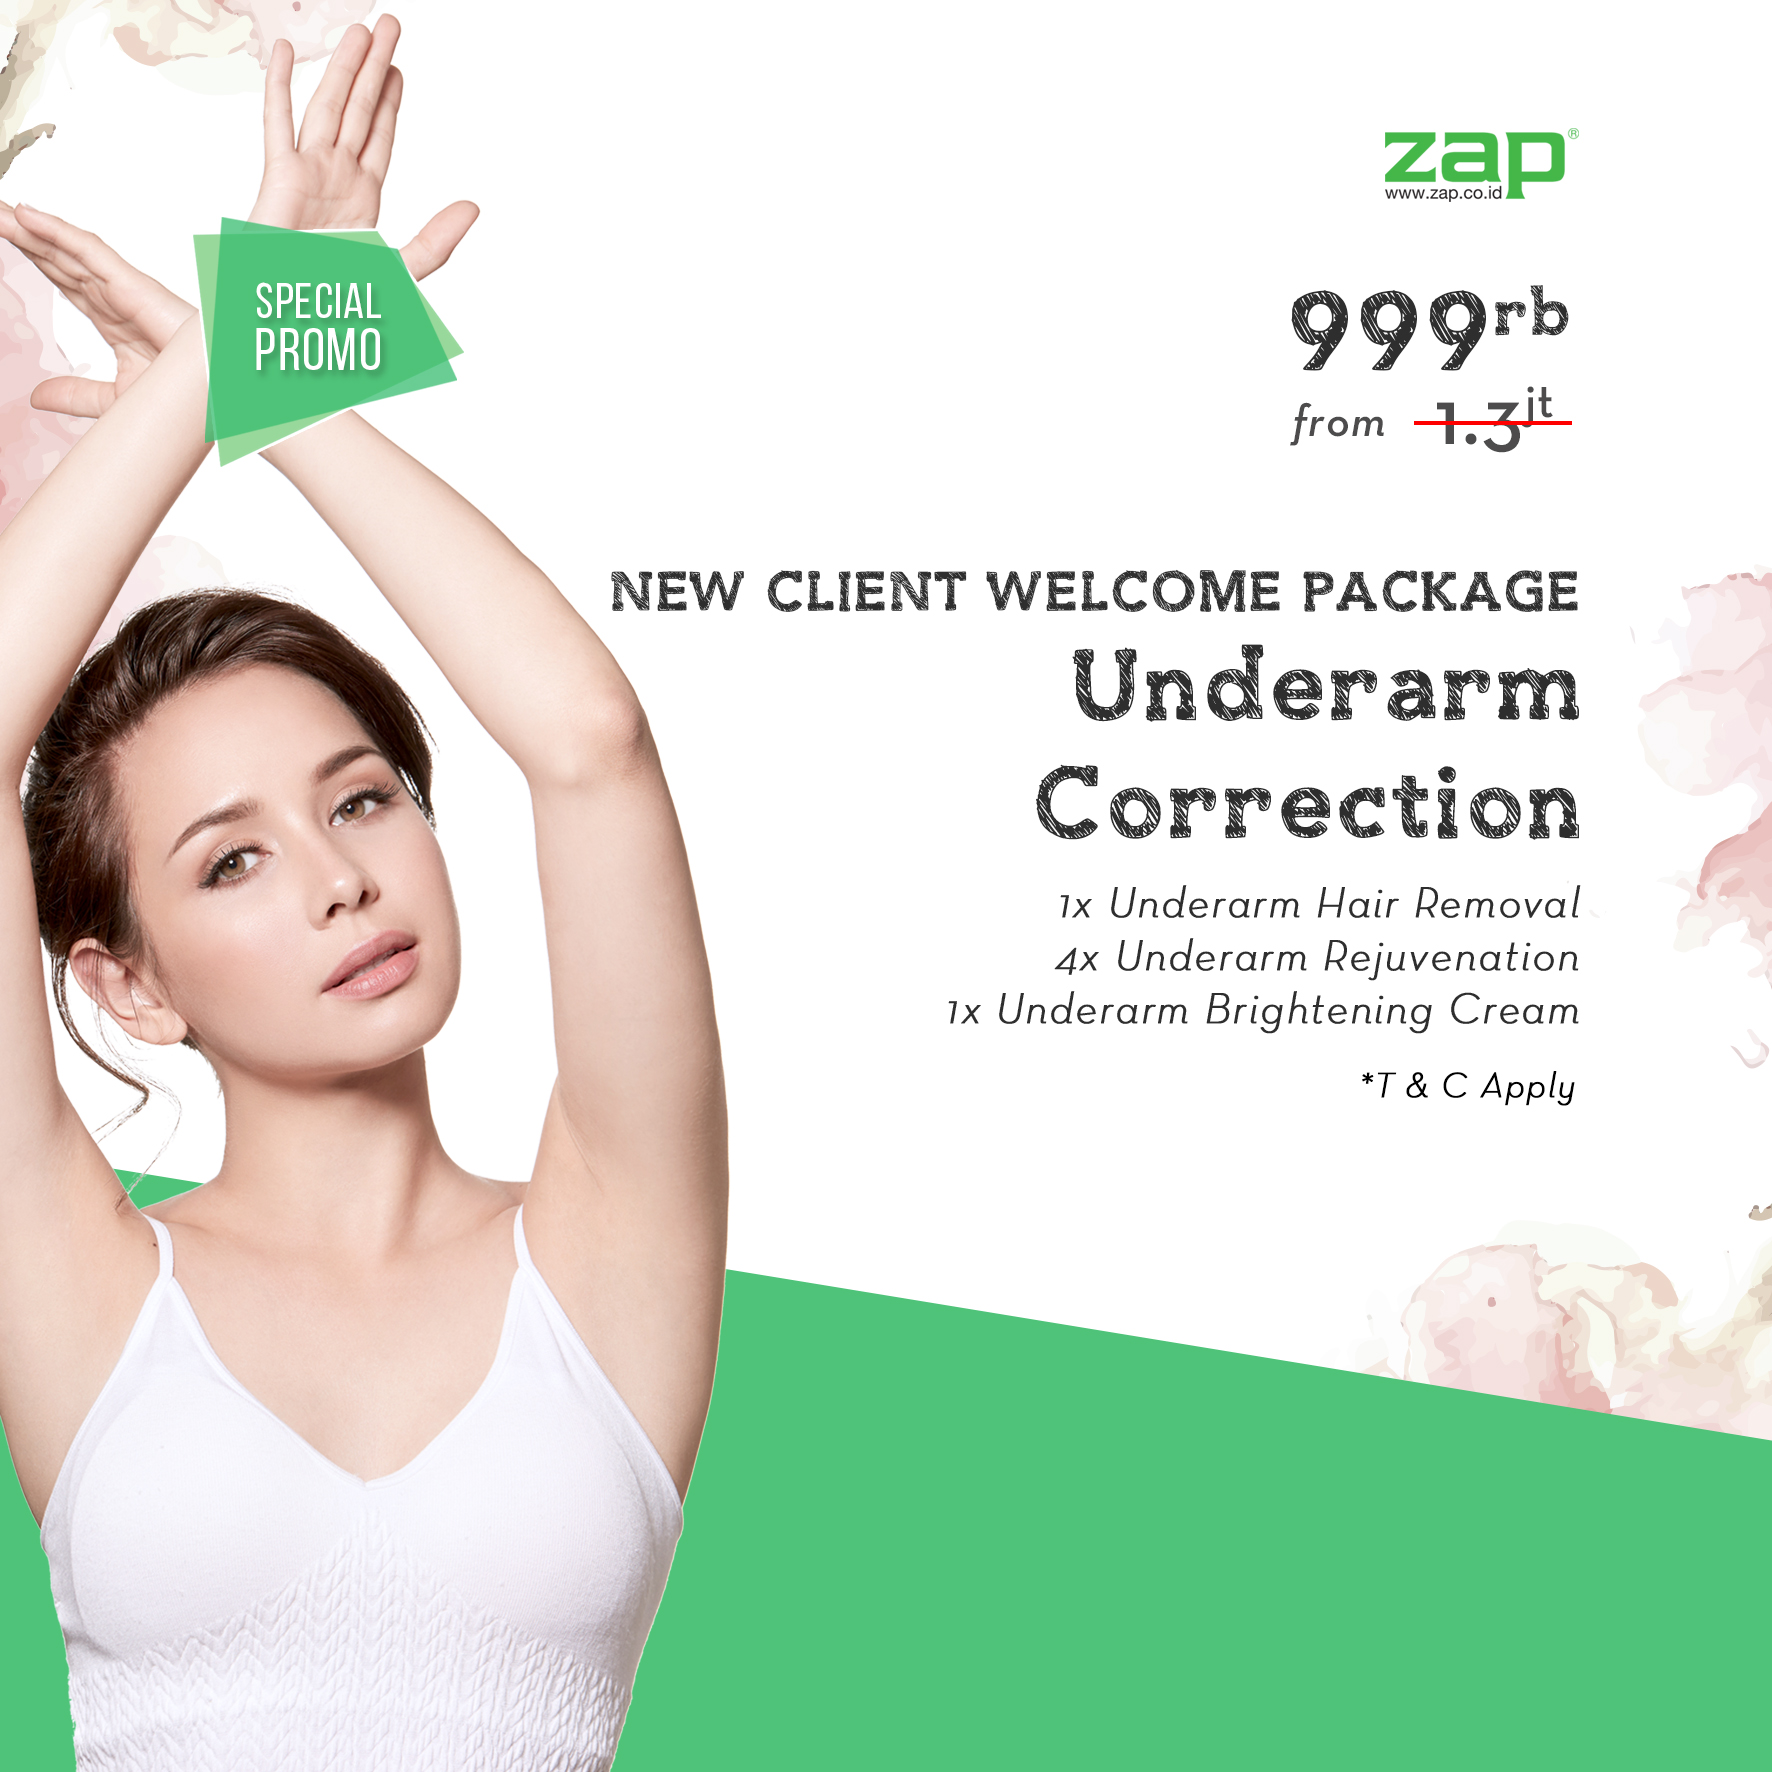 New Client Welcome Package - Underarm Correction